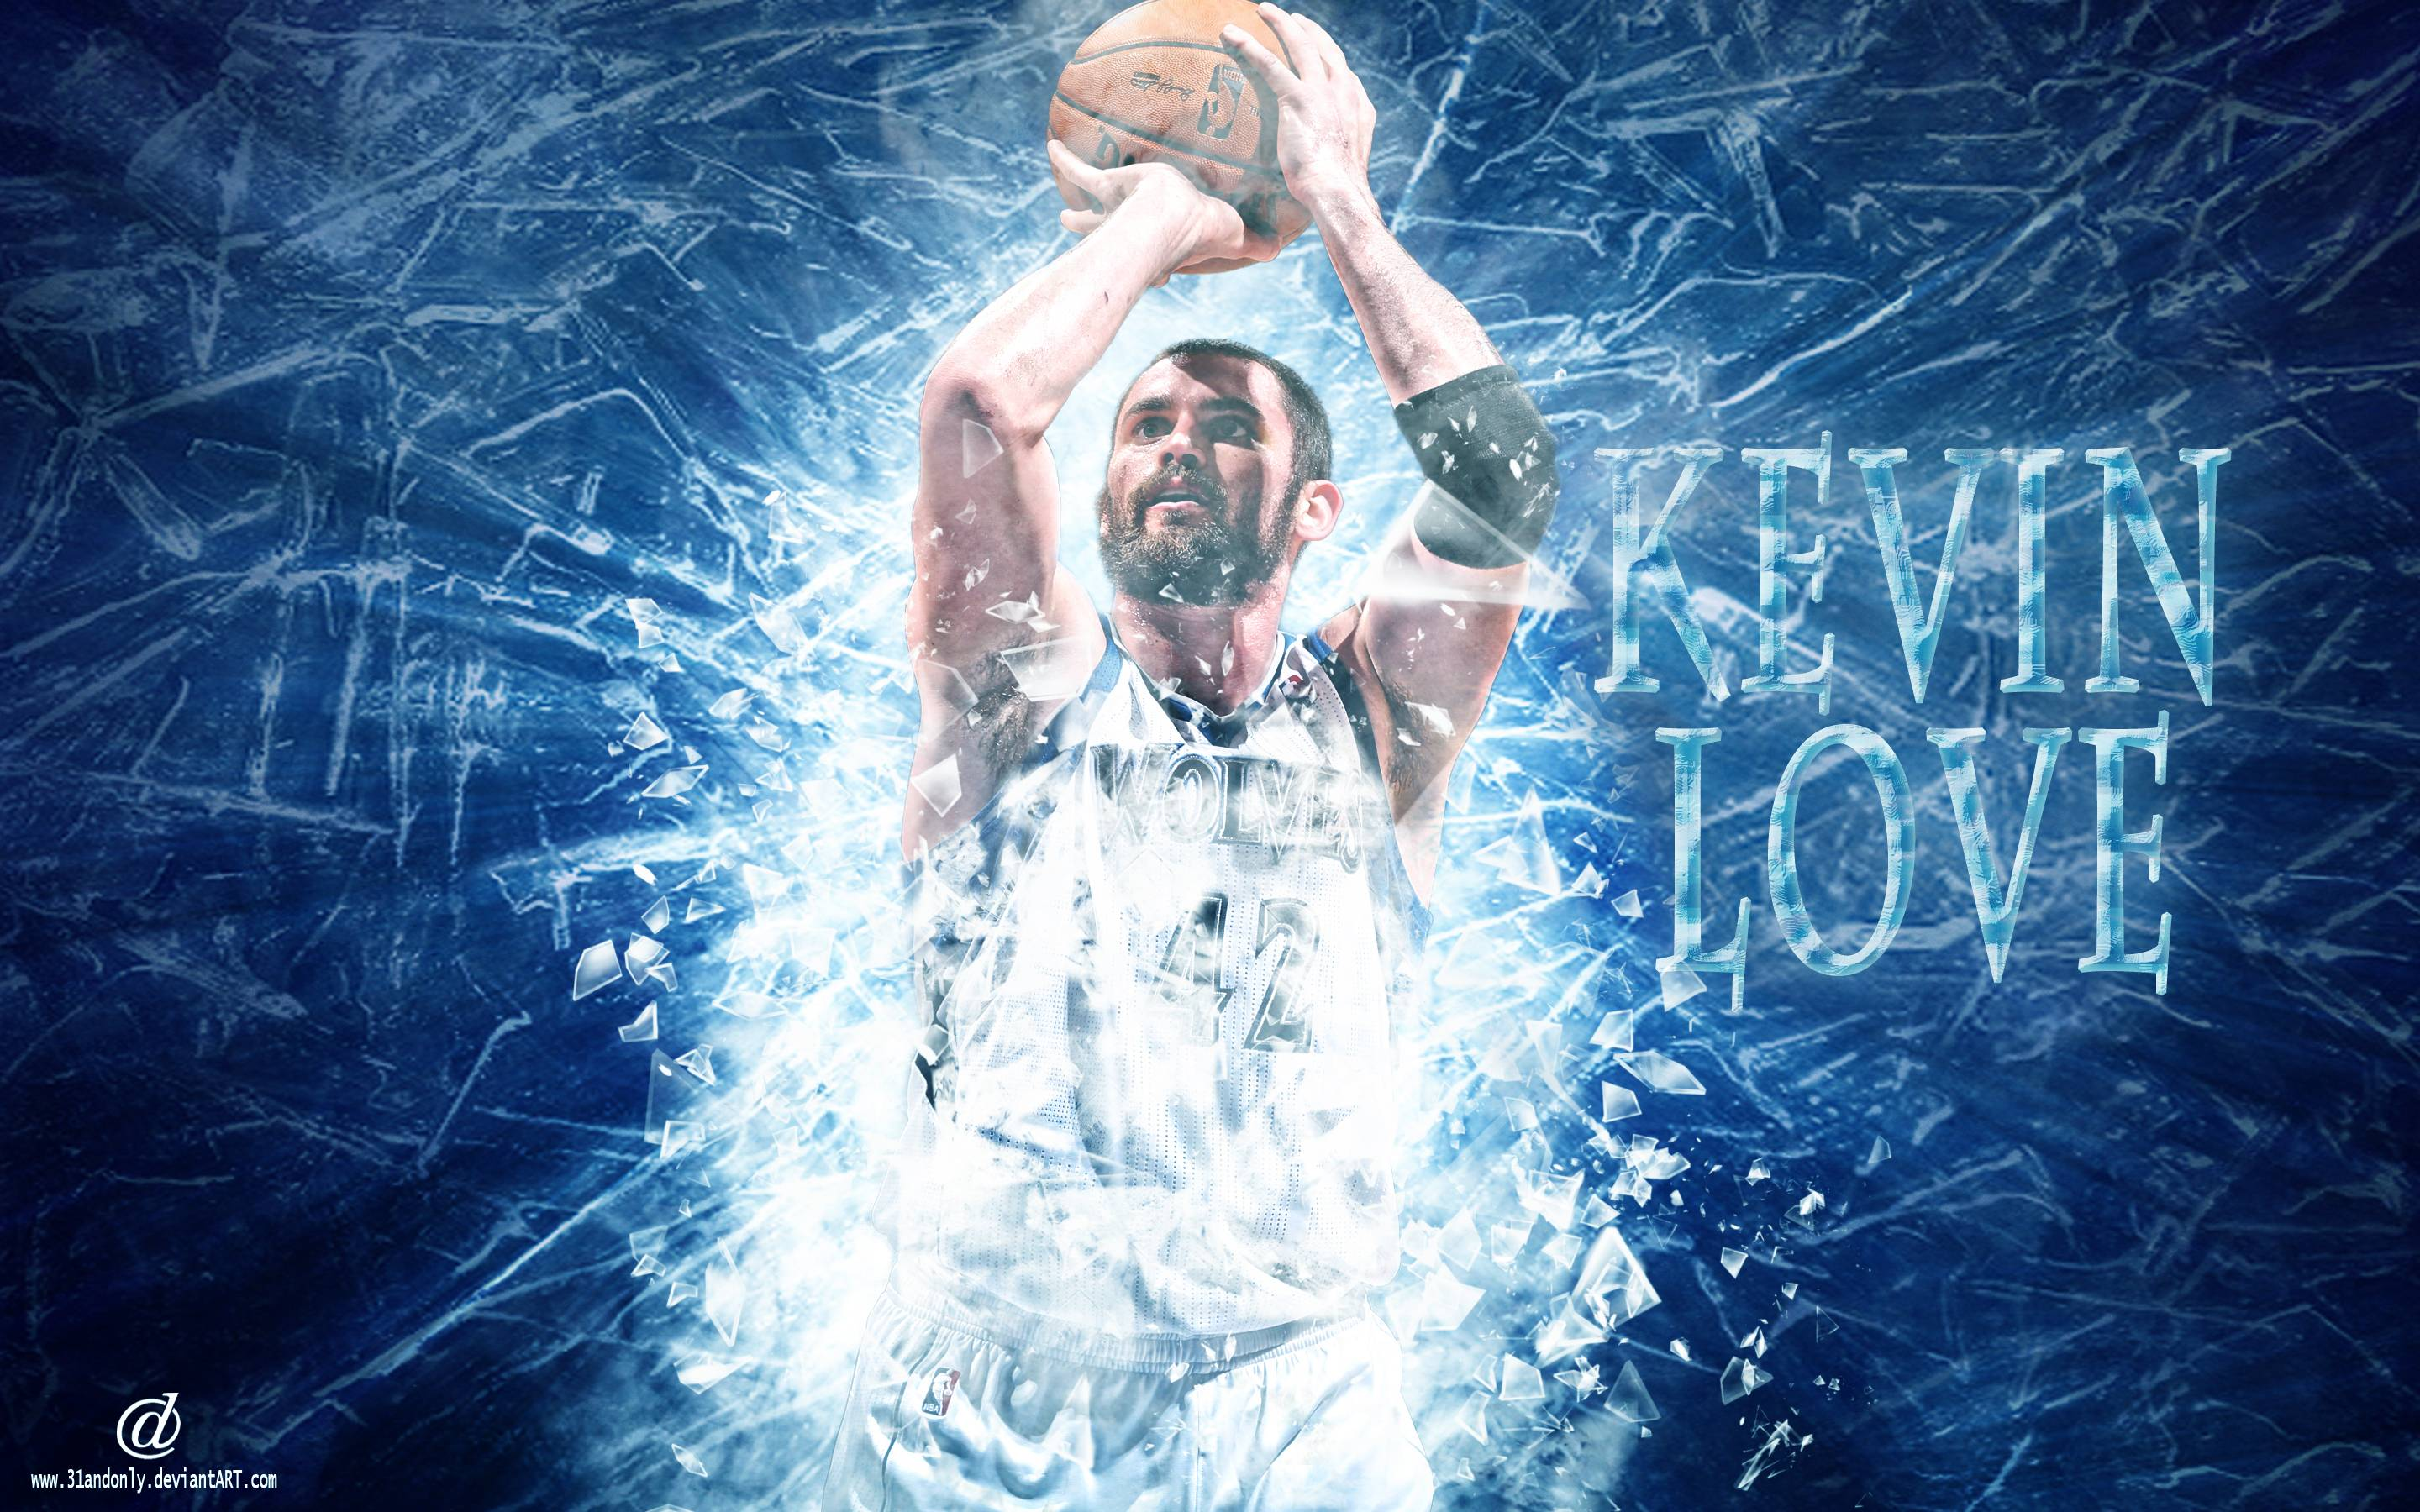 Kevin Love Iphone Wallpaper : Kevin Love Wallpapers - Wallpaper cave